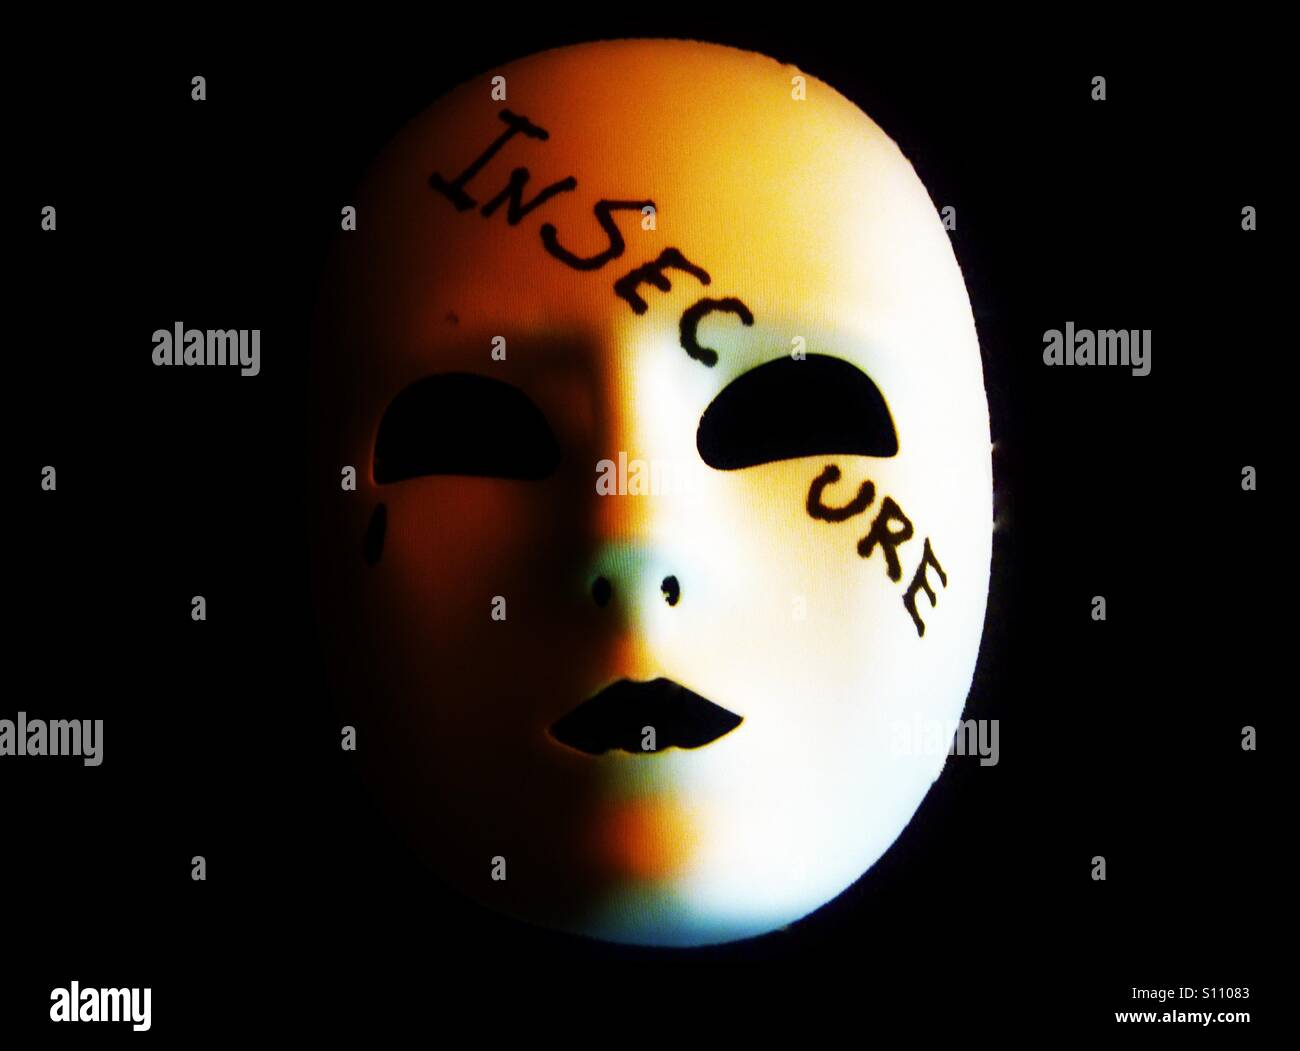 Insecure mask - Stock Image